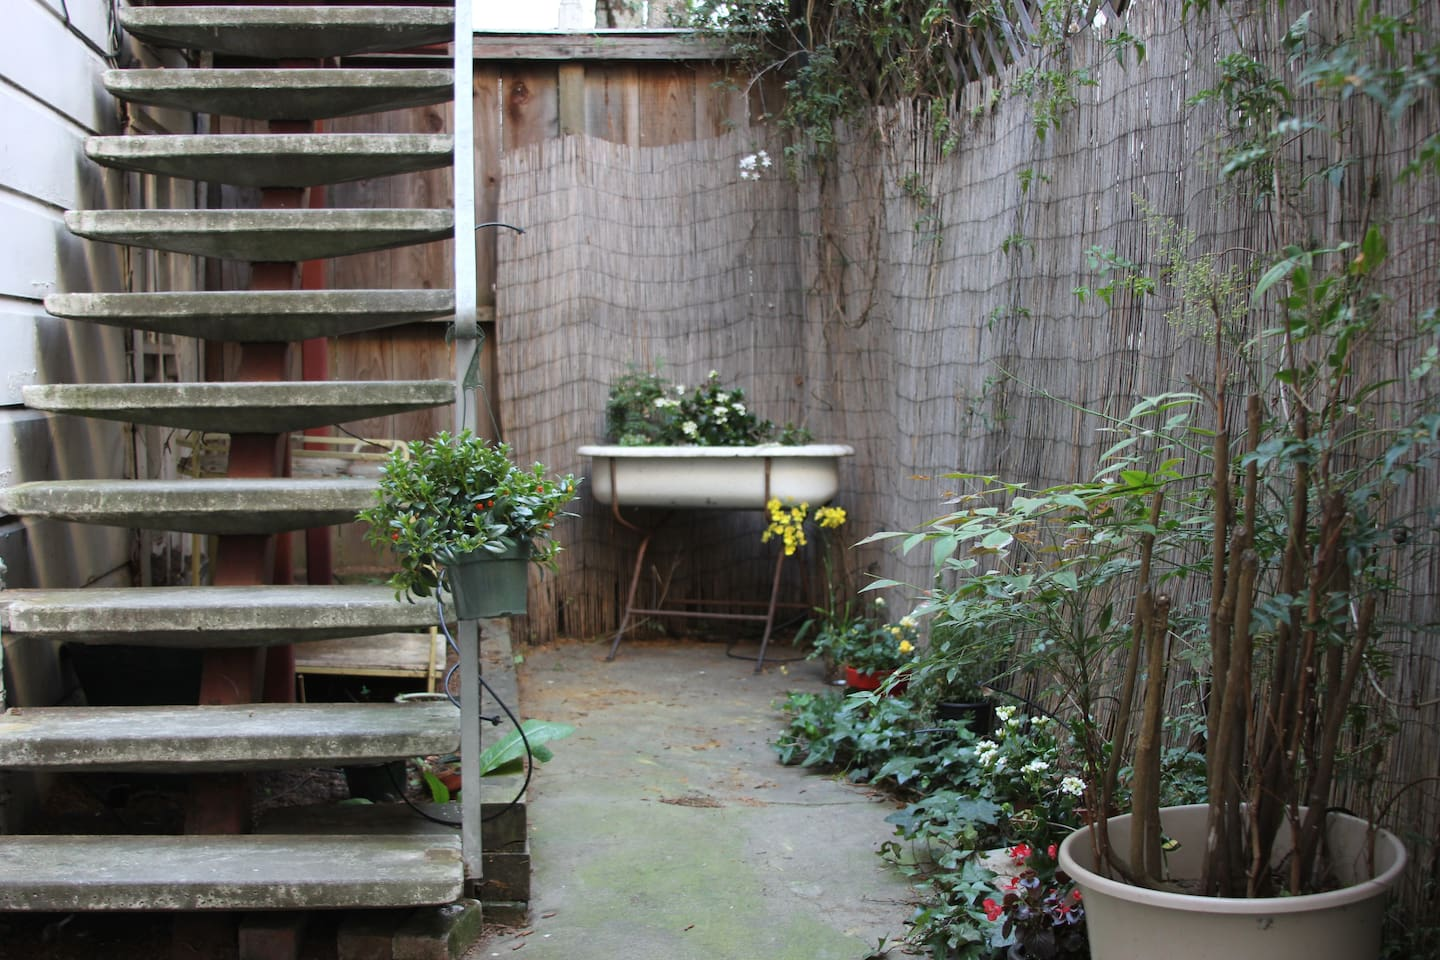 Secluded back patio for enjoying the sun